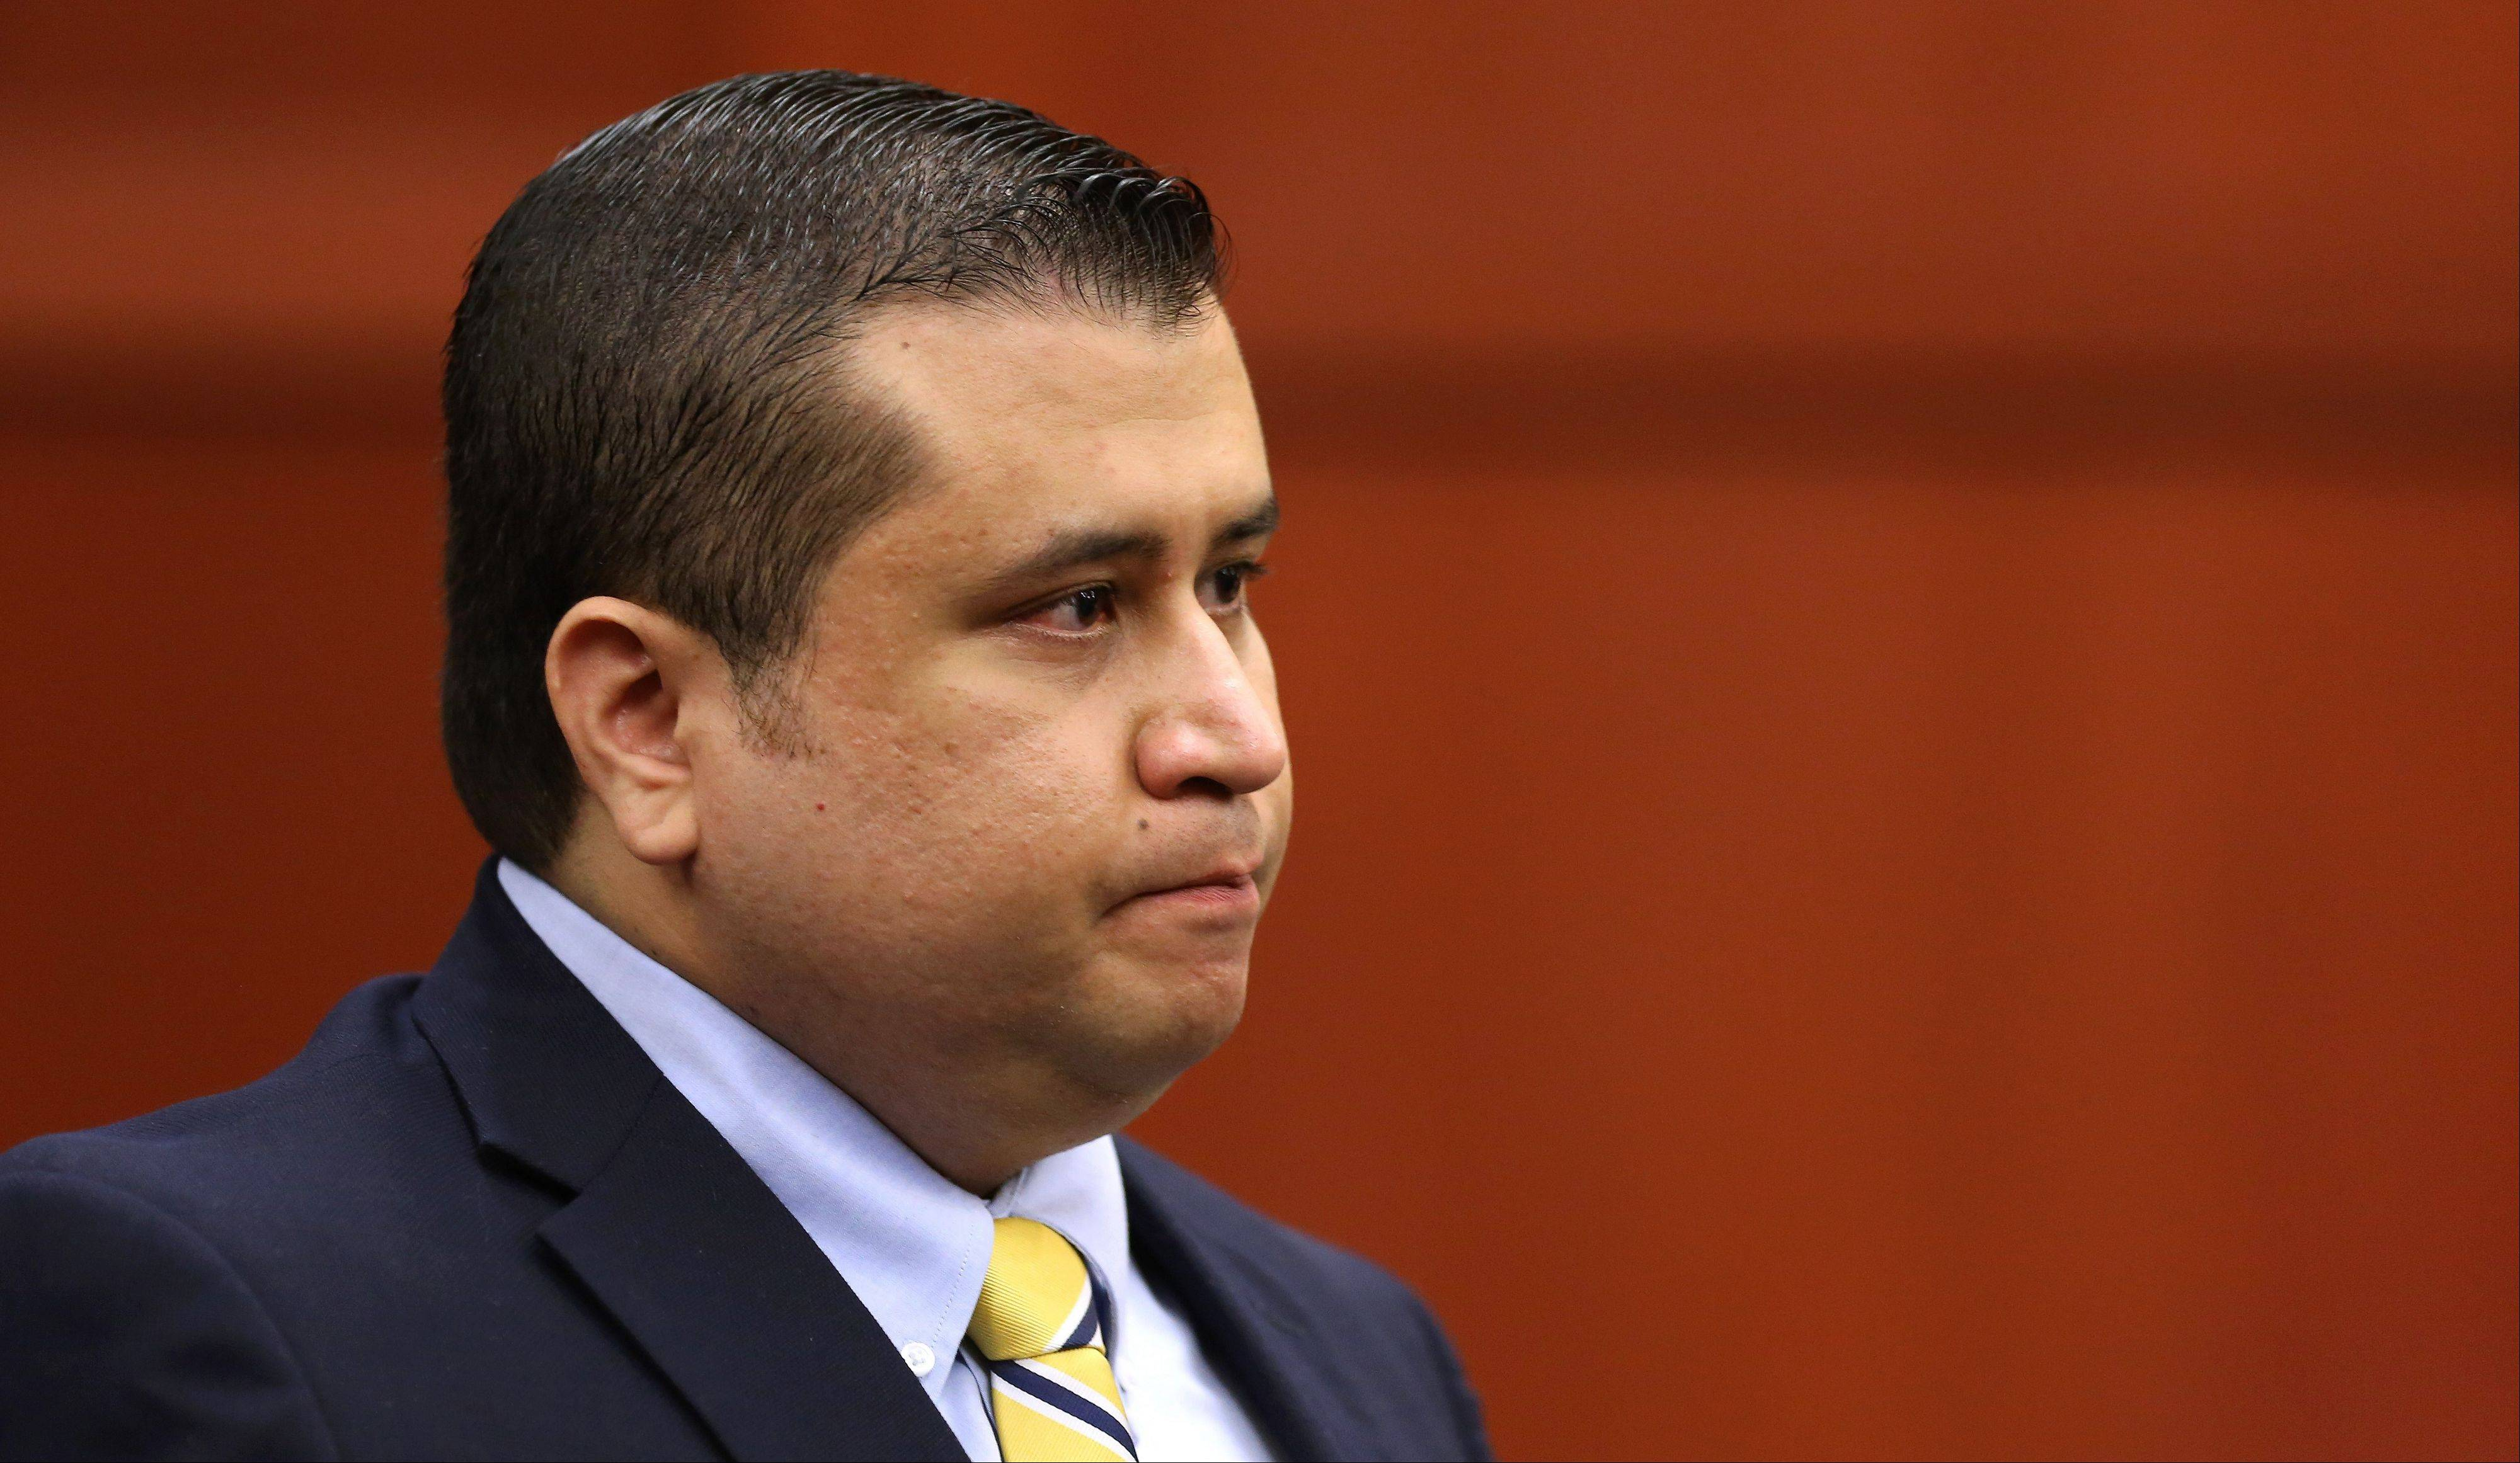 Fla. cities on guard for any post-Zimmerman unrest